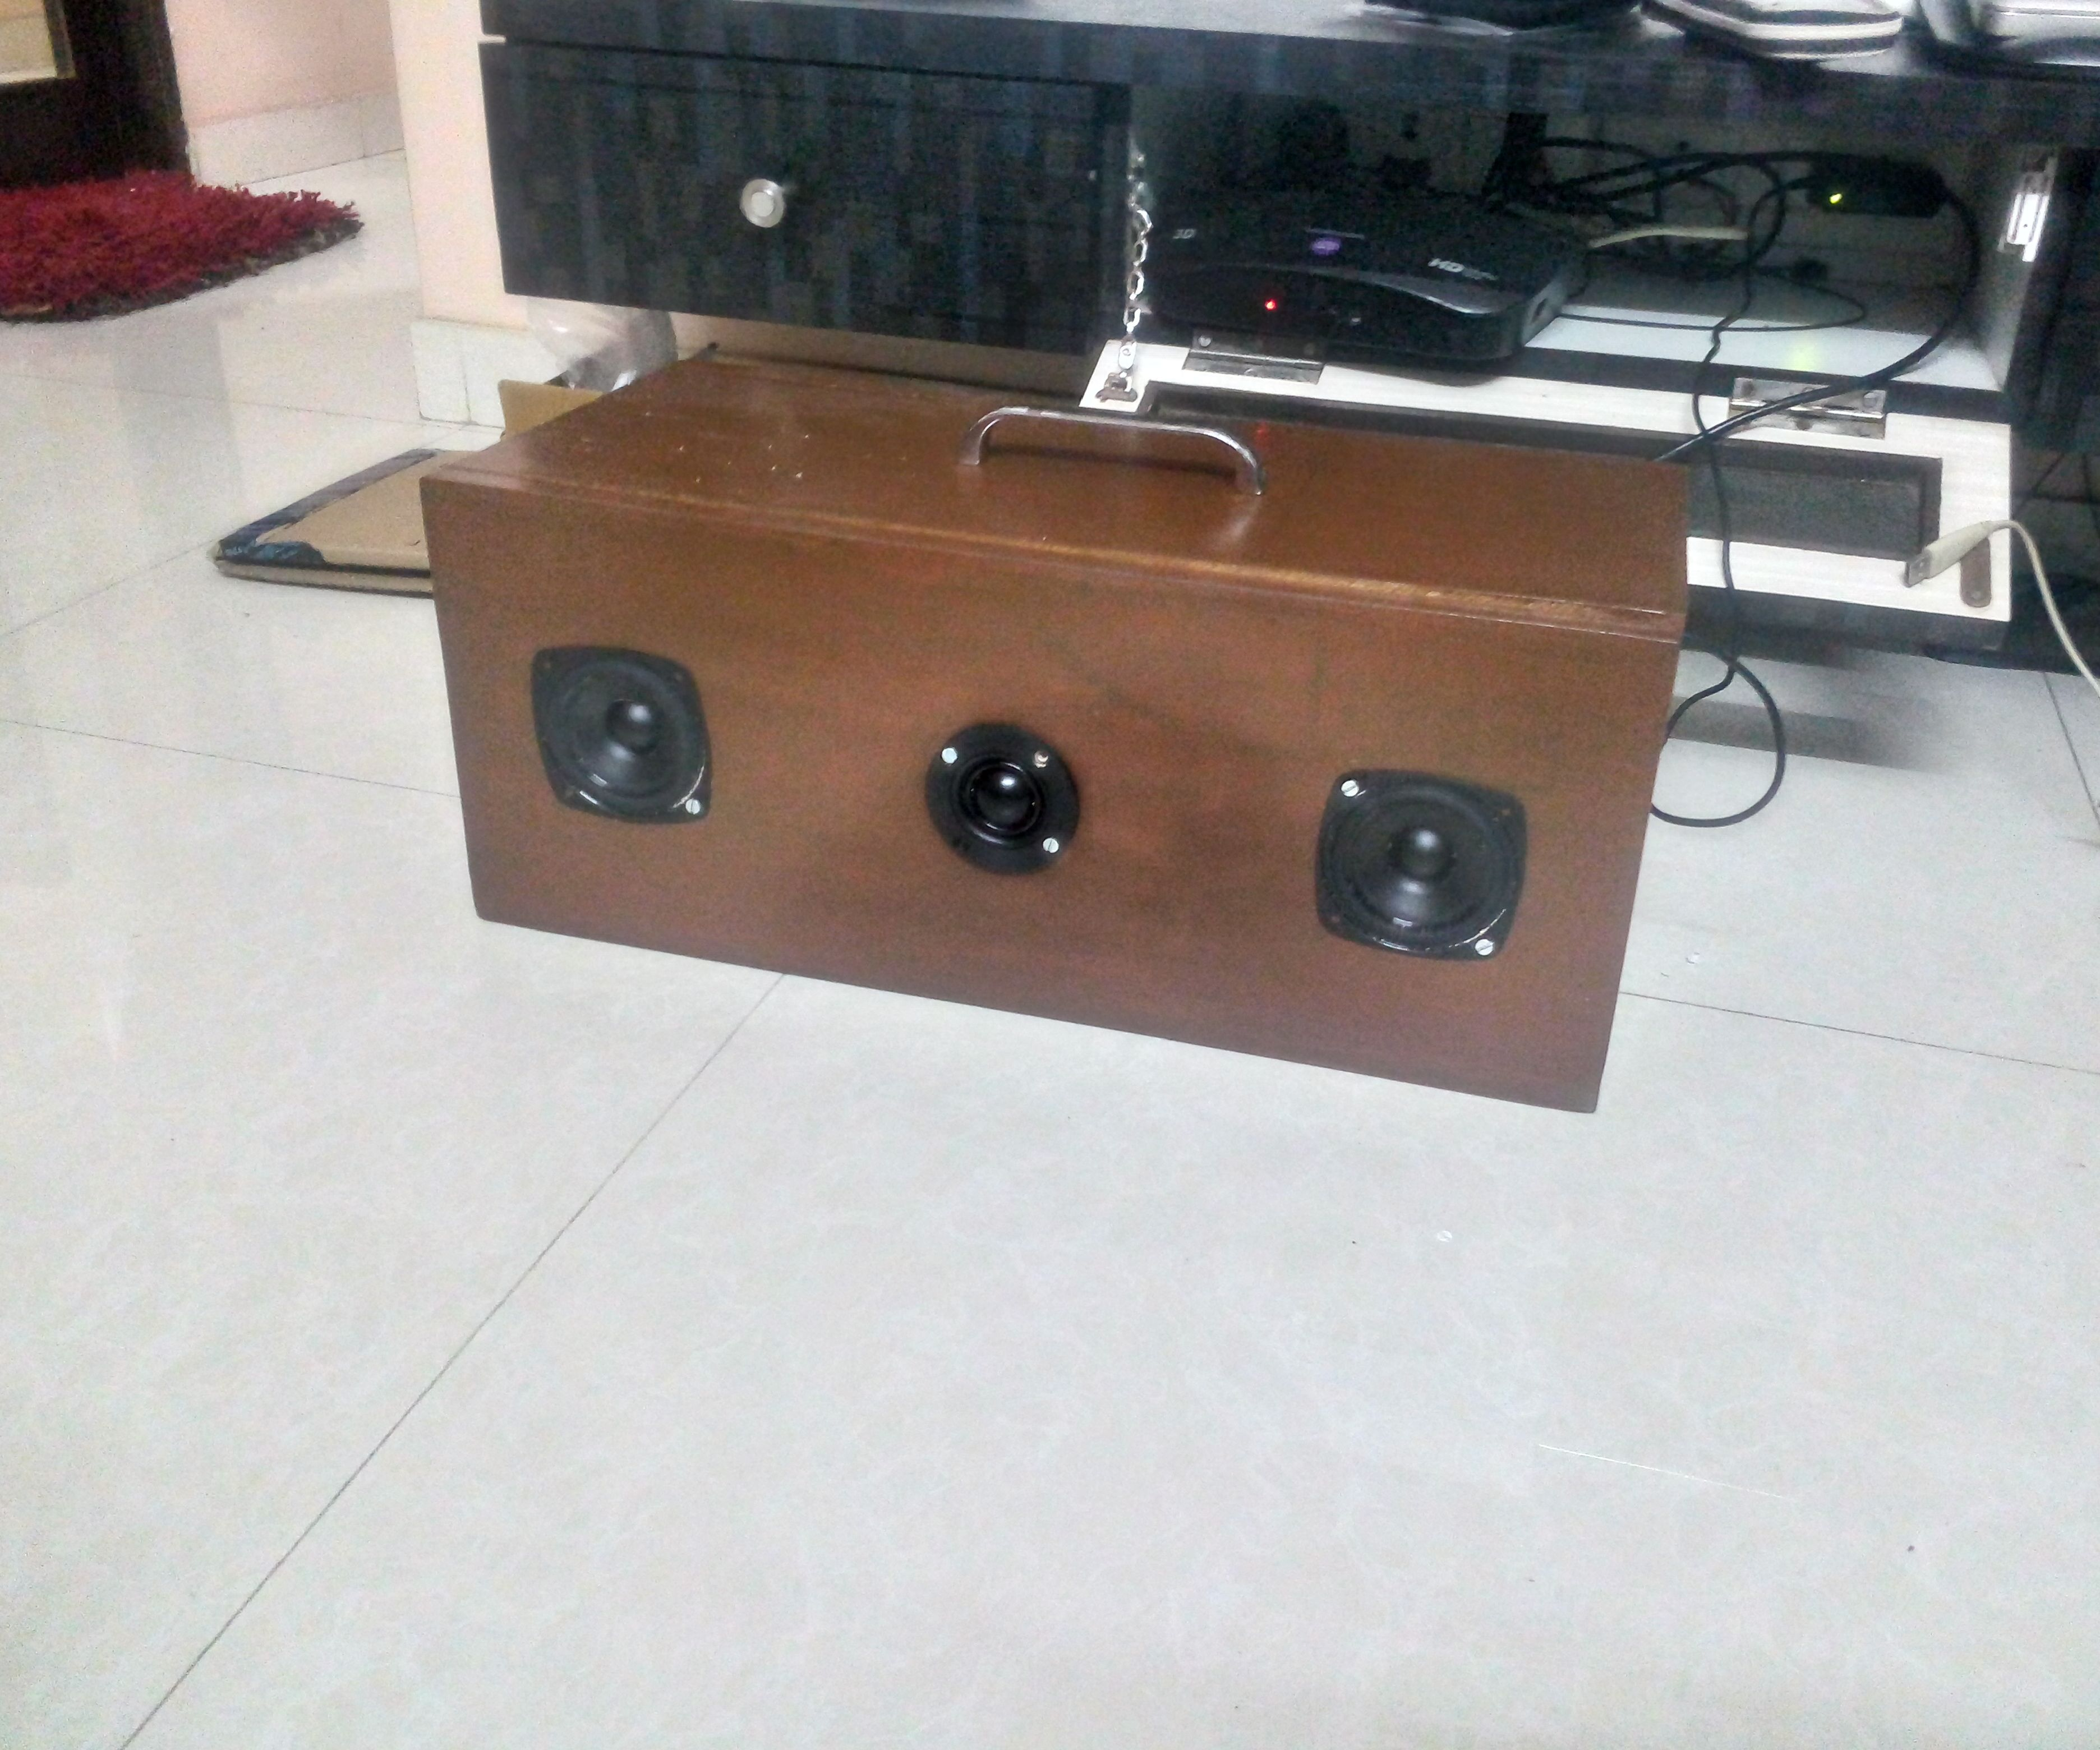 Air play speakers with Raspberry pi and hifi berry amp +